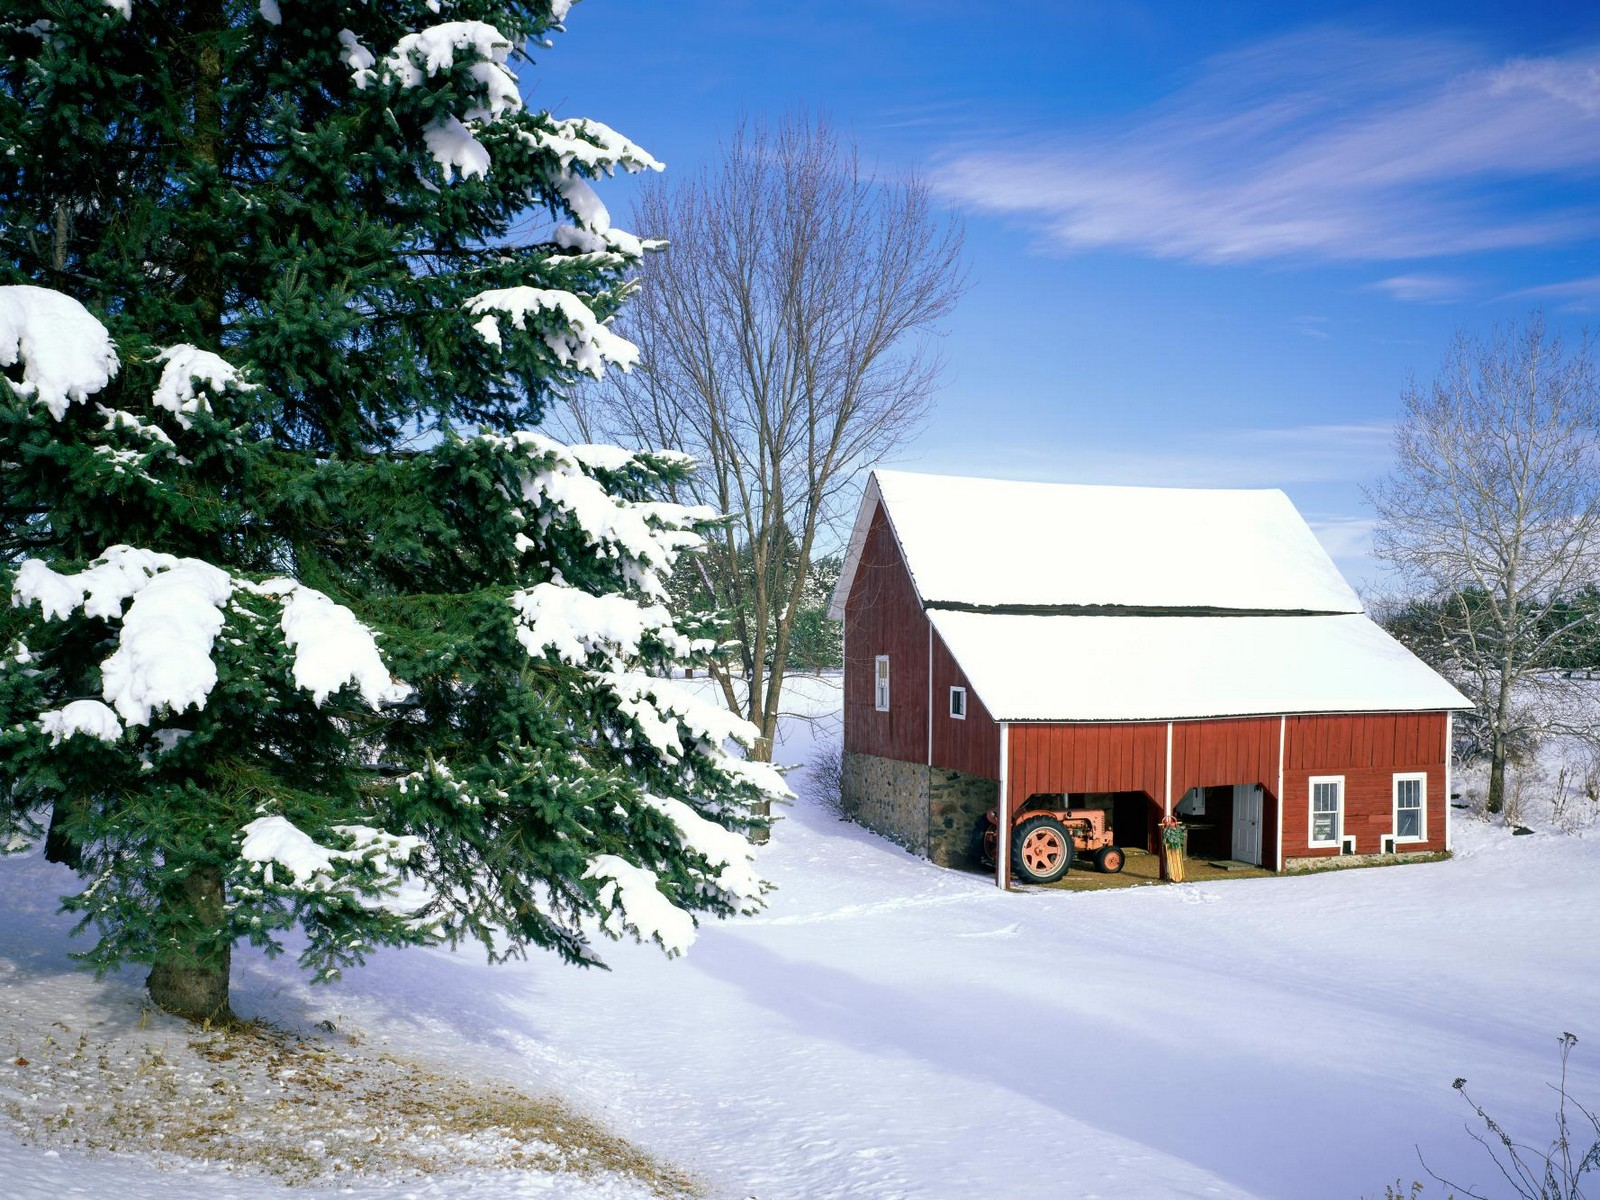 Winter cabin wallpapers Winter cabin stock photos 1600x1200